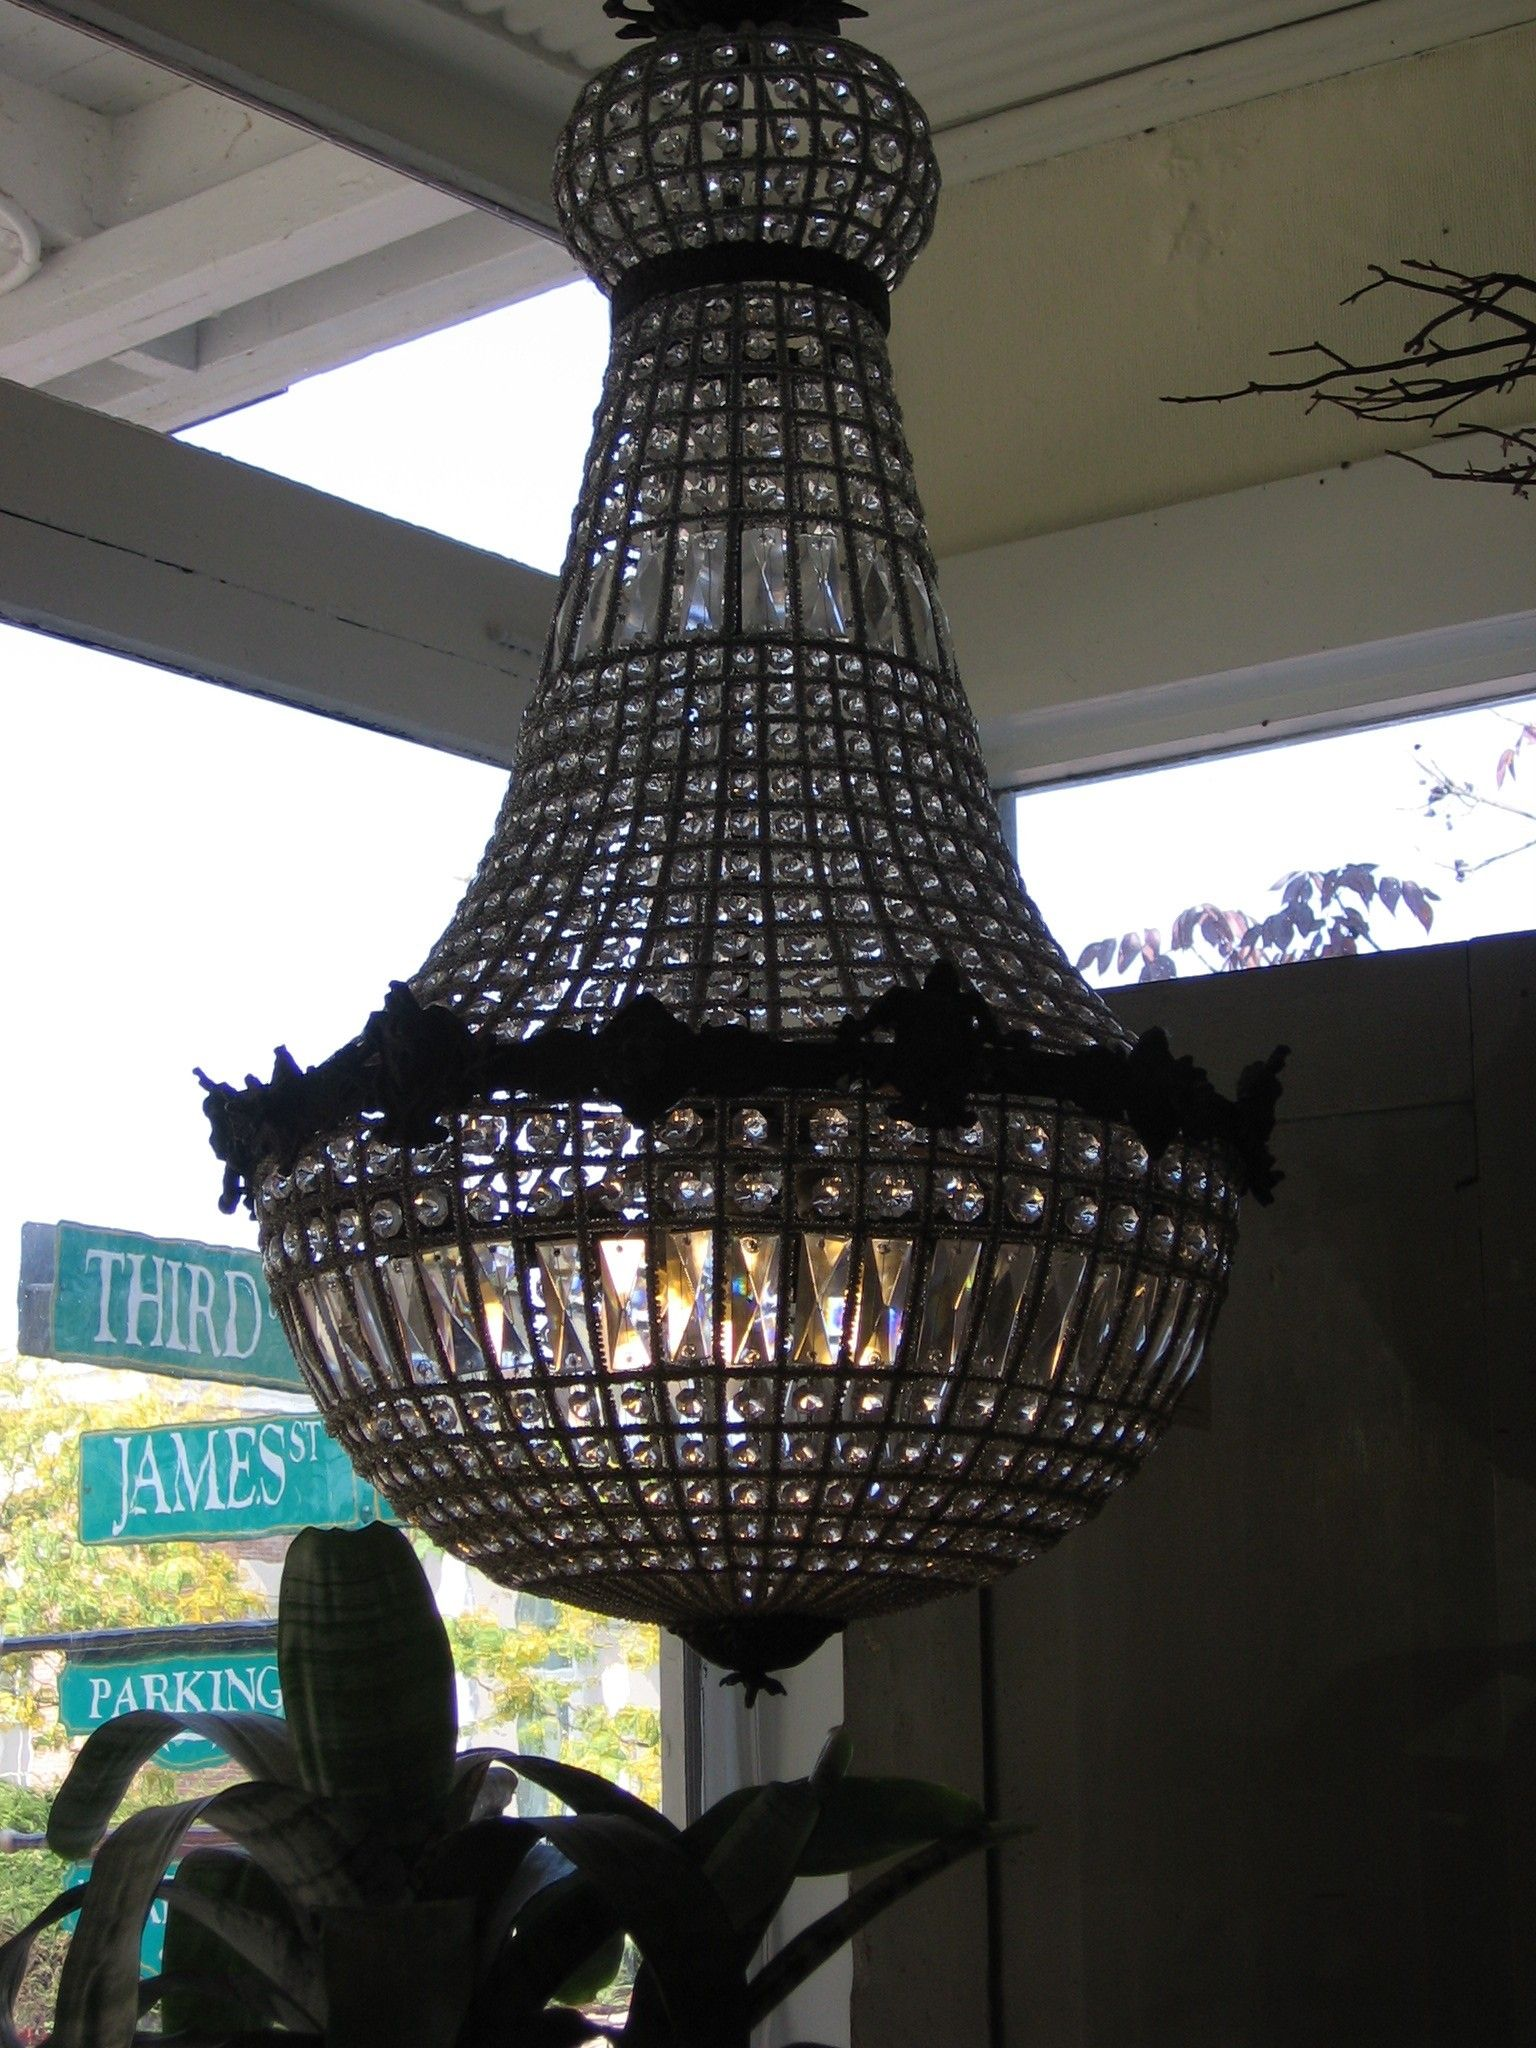 Antique Egyptian Chandelier $1200 - Chicago http://furnishly.com/catalog/ - Antique Egyptian Chandelier $1200 - Chicago Http://furnishly.com